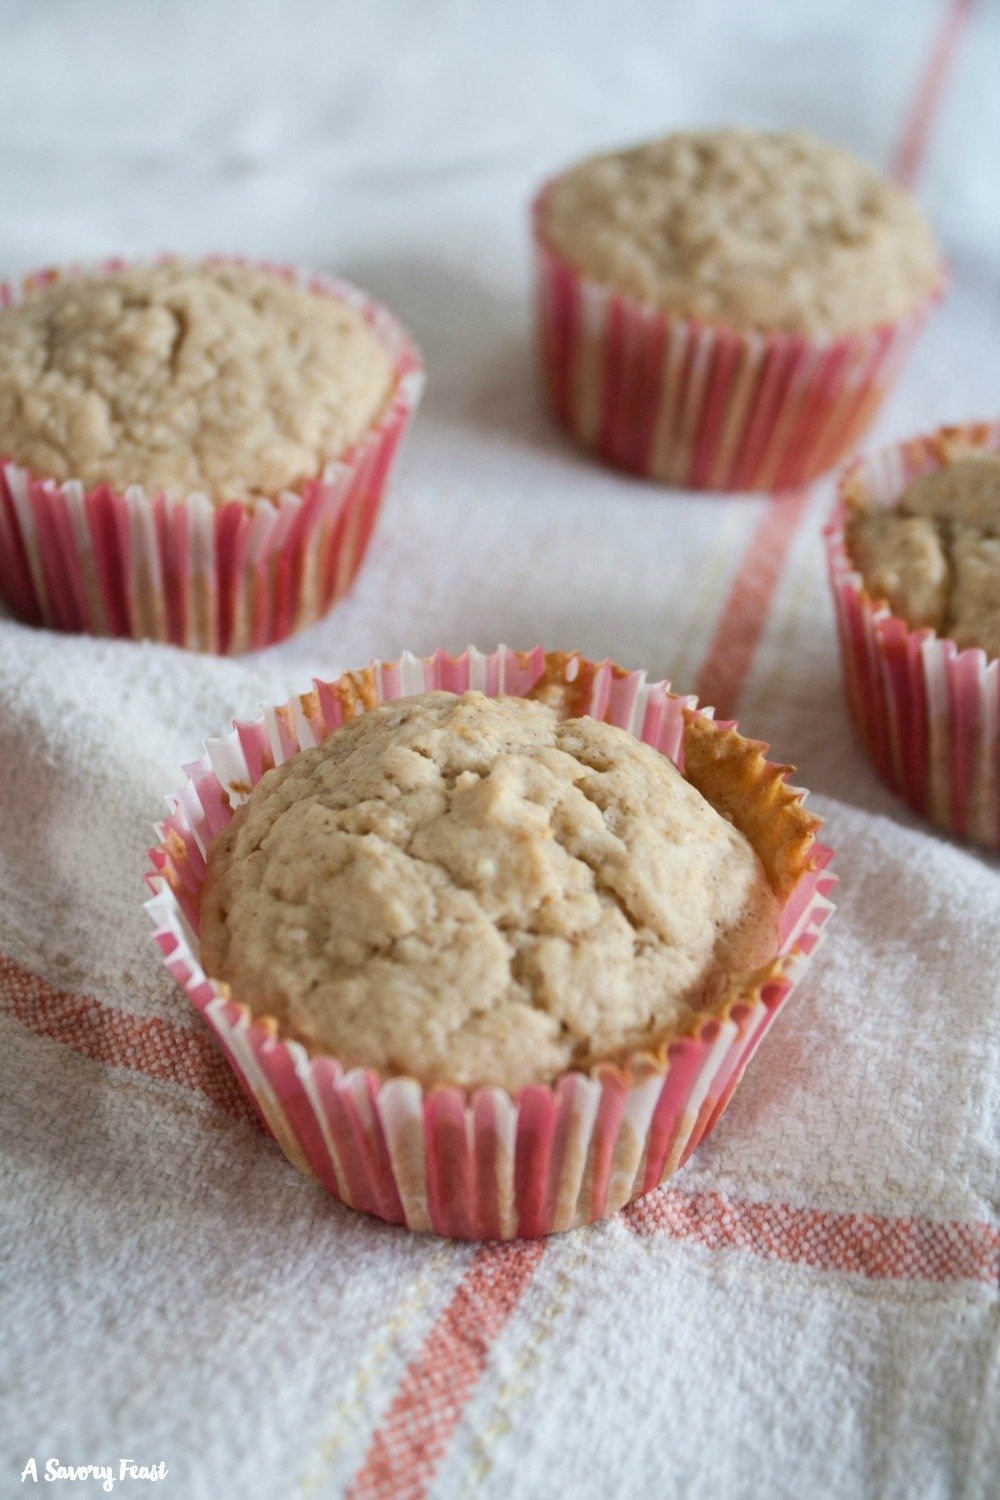 Muffins for make a delicious breakfast, and it's even easier with these One Bowl Applesauce Muffins! Try this simple recipe this week for a grab-and-go breakfast option.